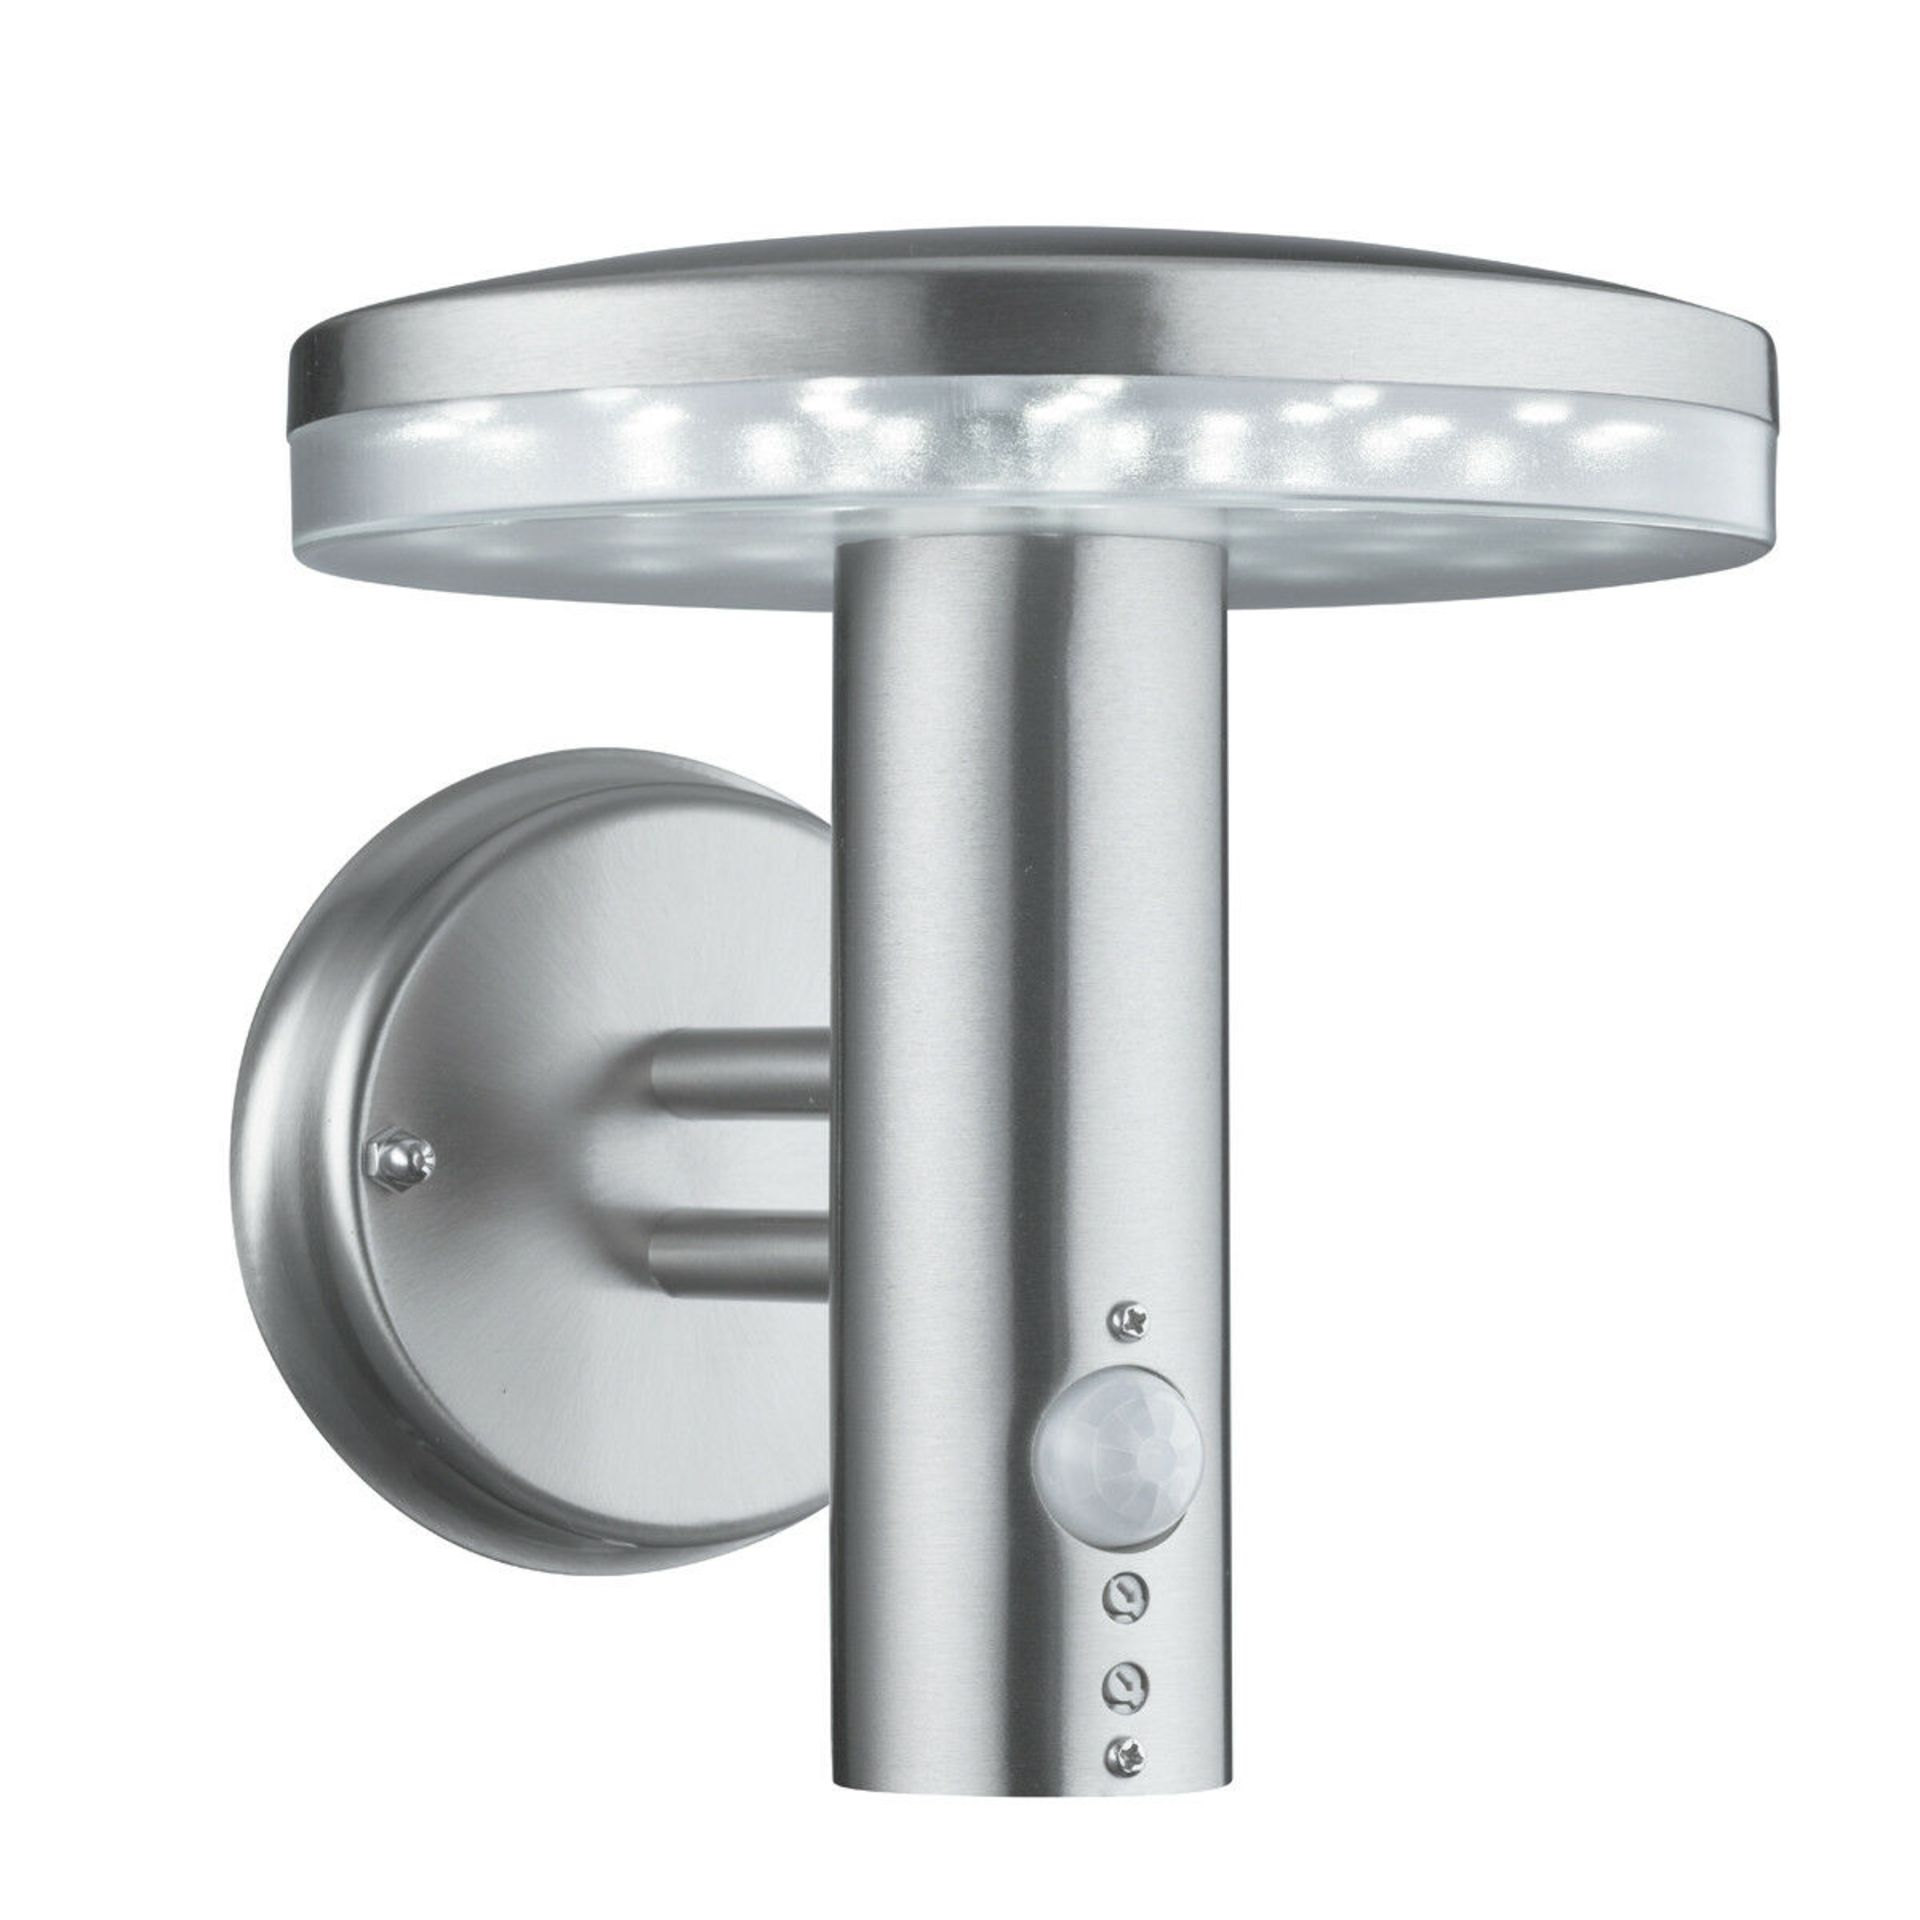 Lot 9156 - 1 x SearchlightOutdoor LED Wall Light in Brushed Chrome IP44 - Product Code 4774 - New Boxed Stock -